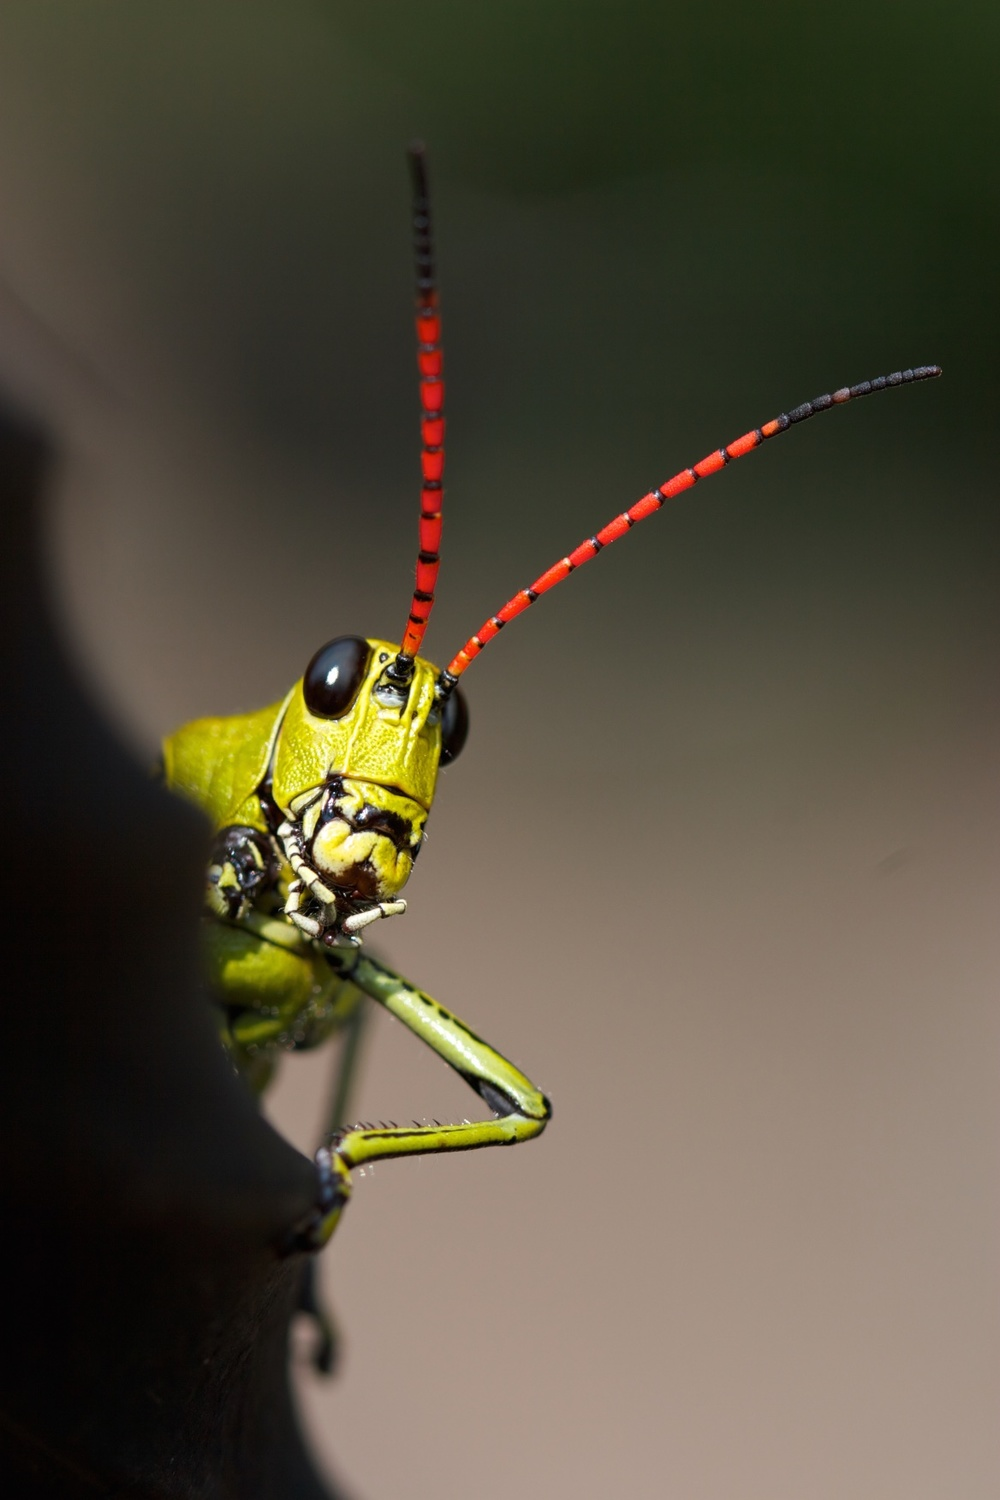 What's up, man … apart from my antennae?